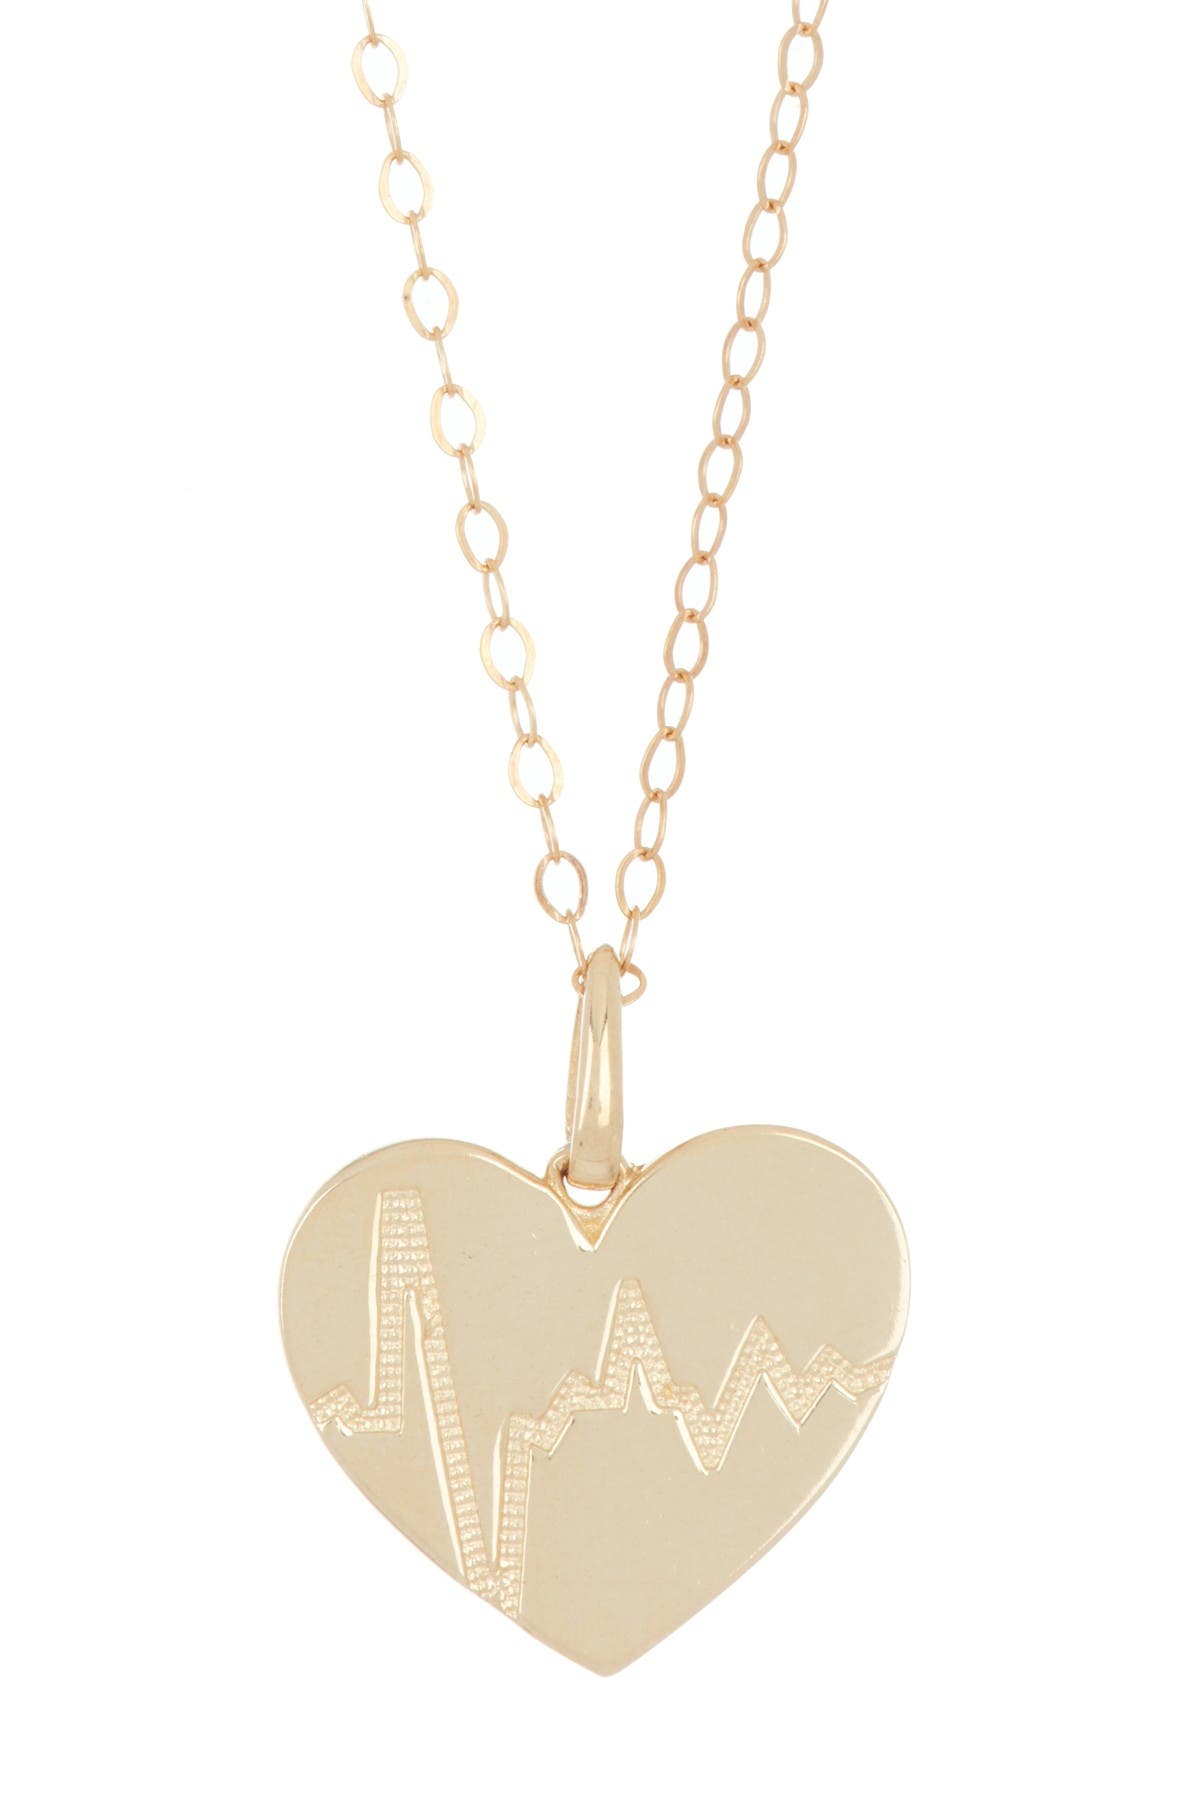 Image of Candela 10K Yellow Gold Heartbeat Pendant with Gold Filled Chain